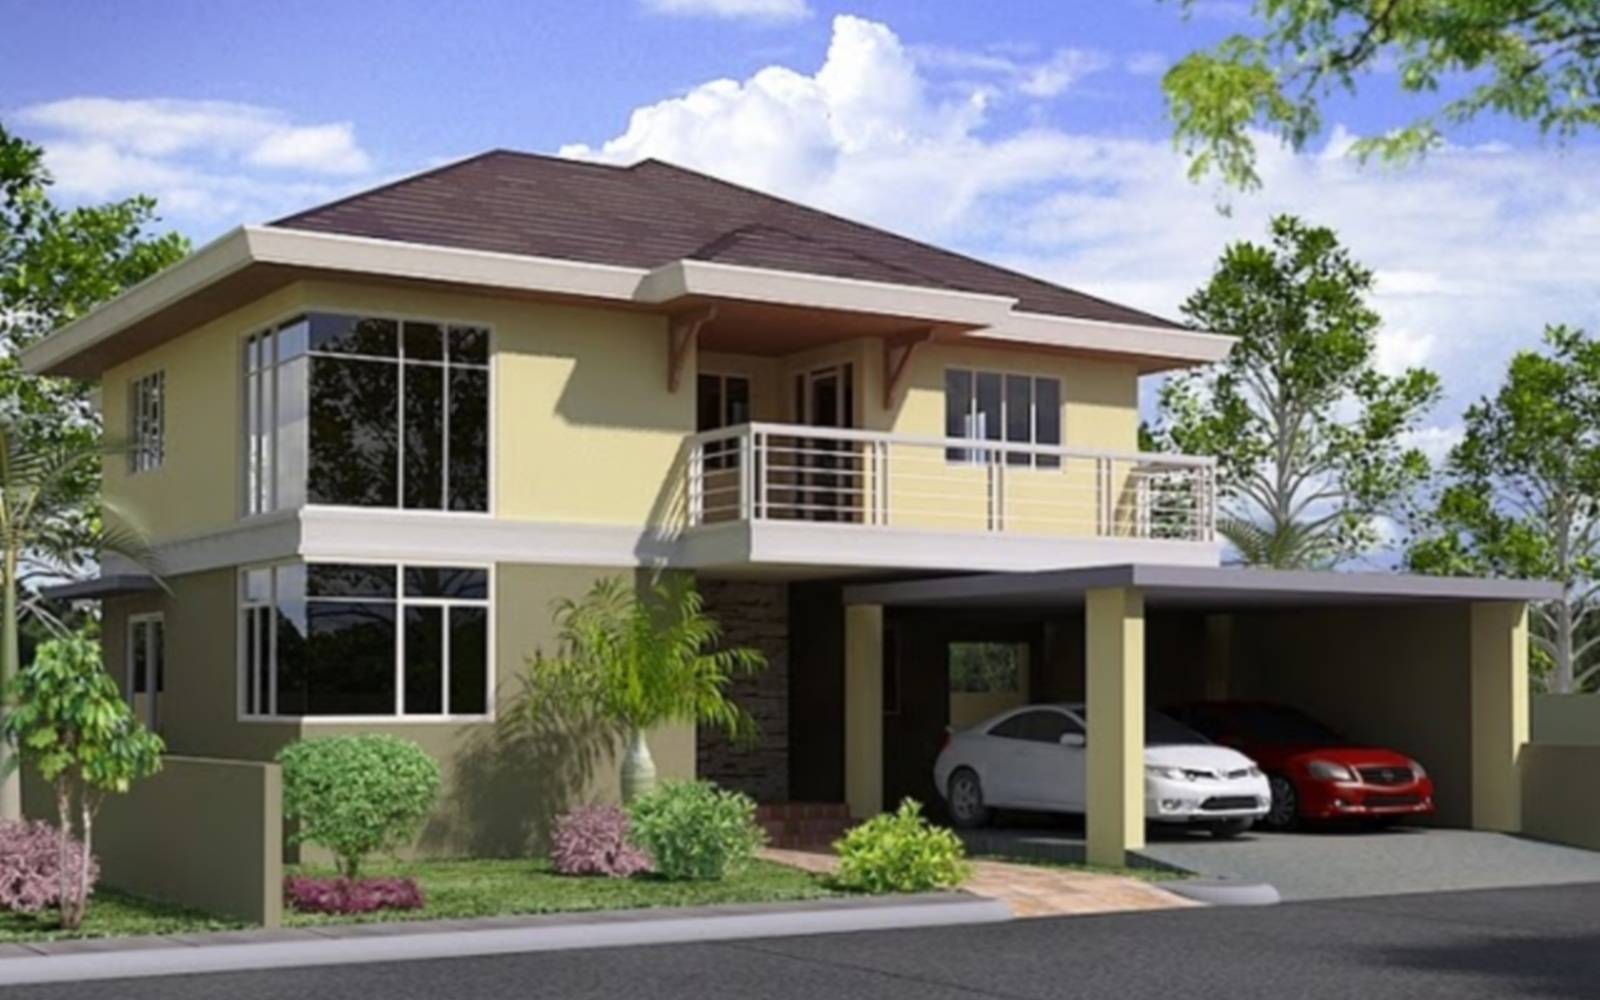 Kk two storey house plan philippines photoshop hd 2 storey house plans